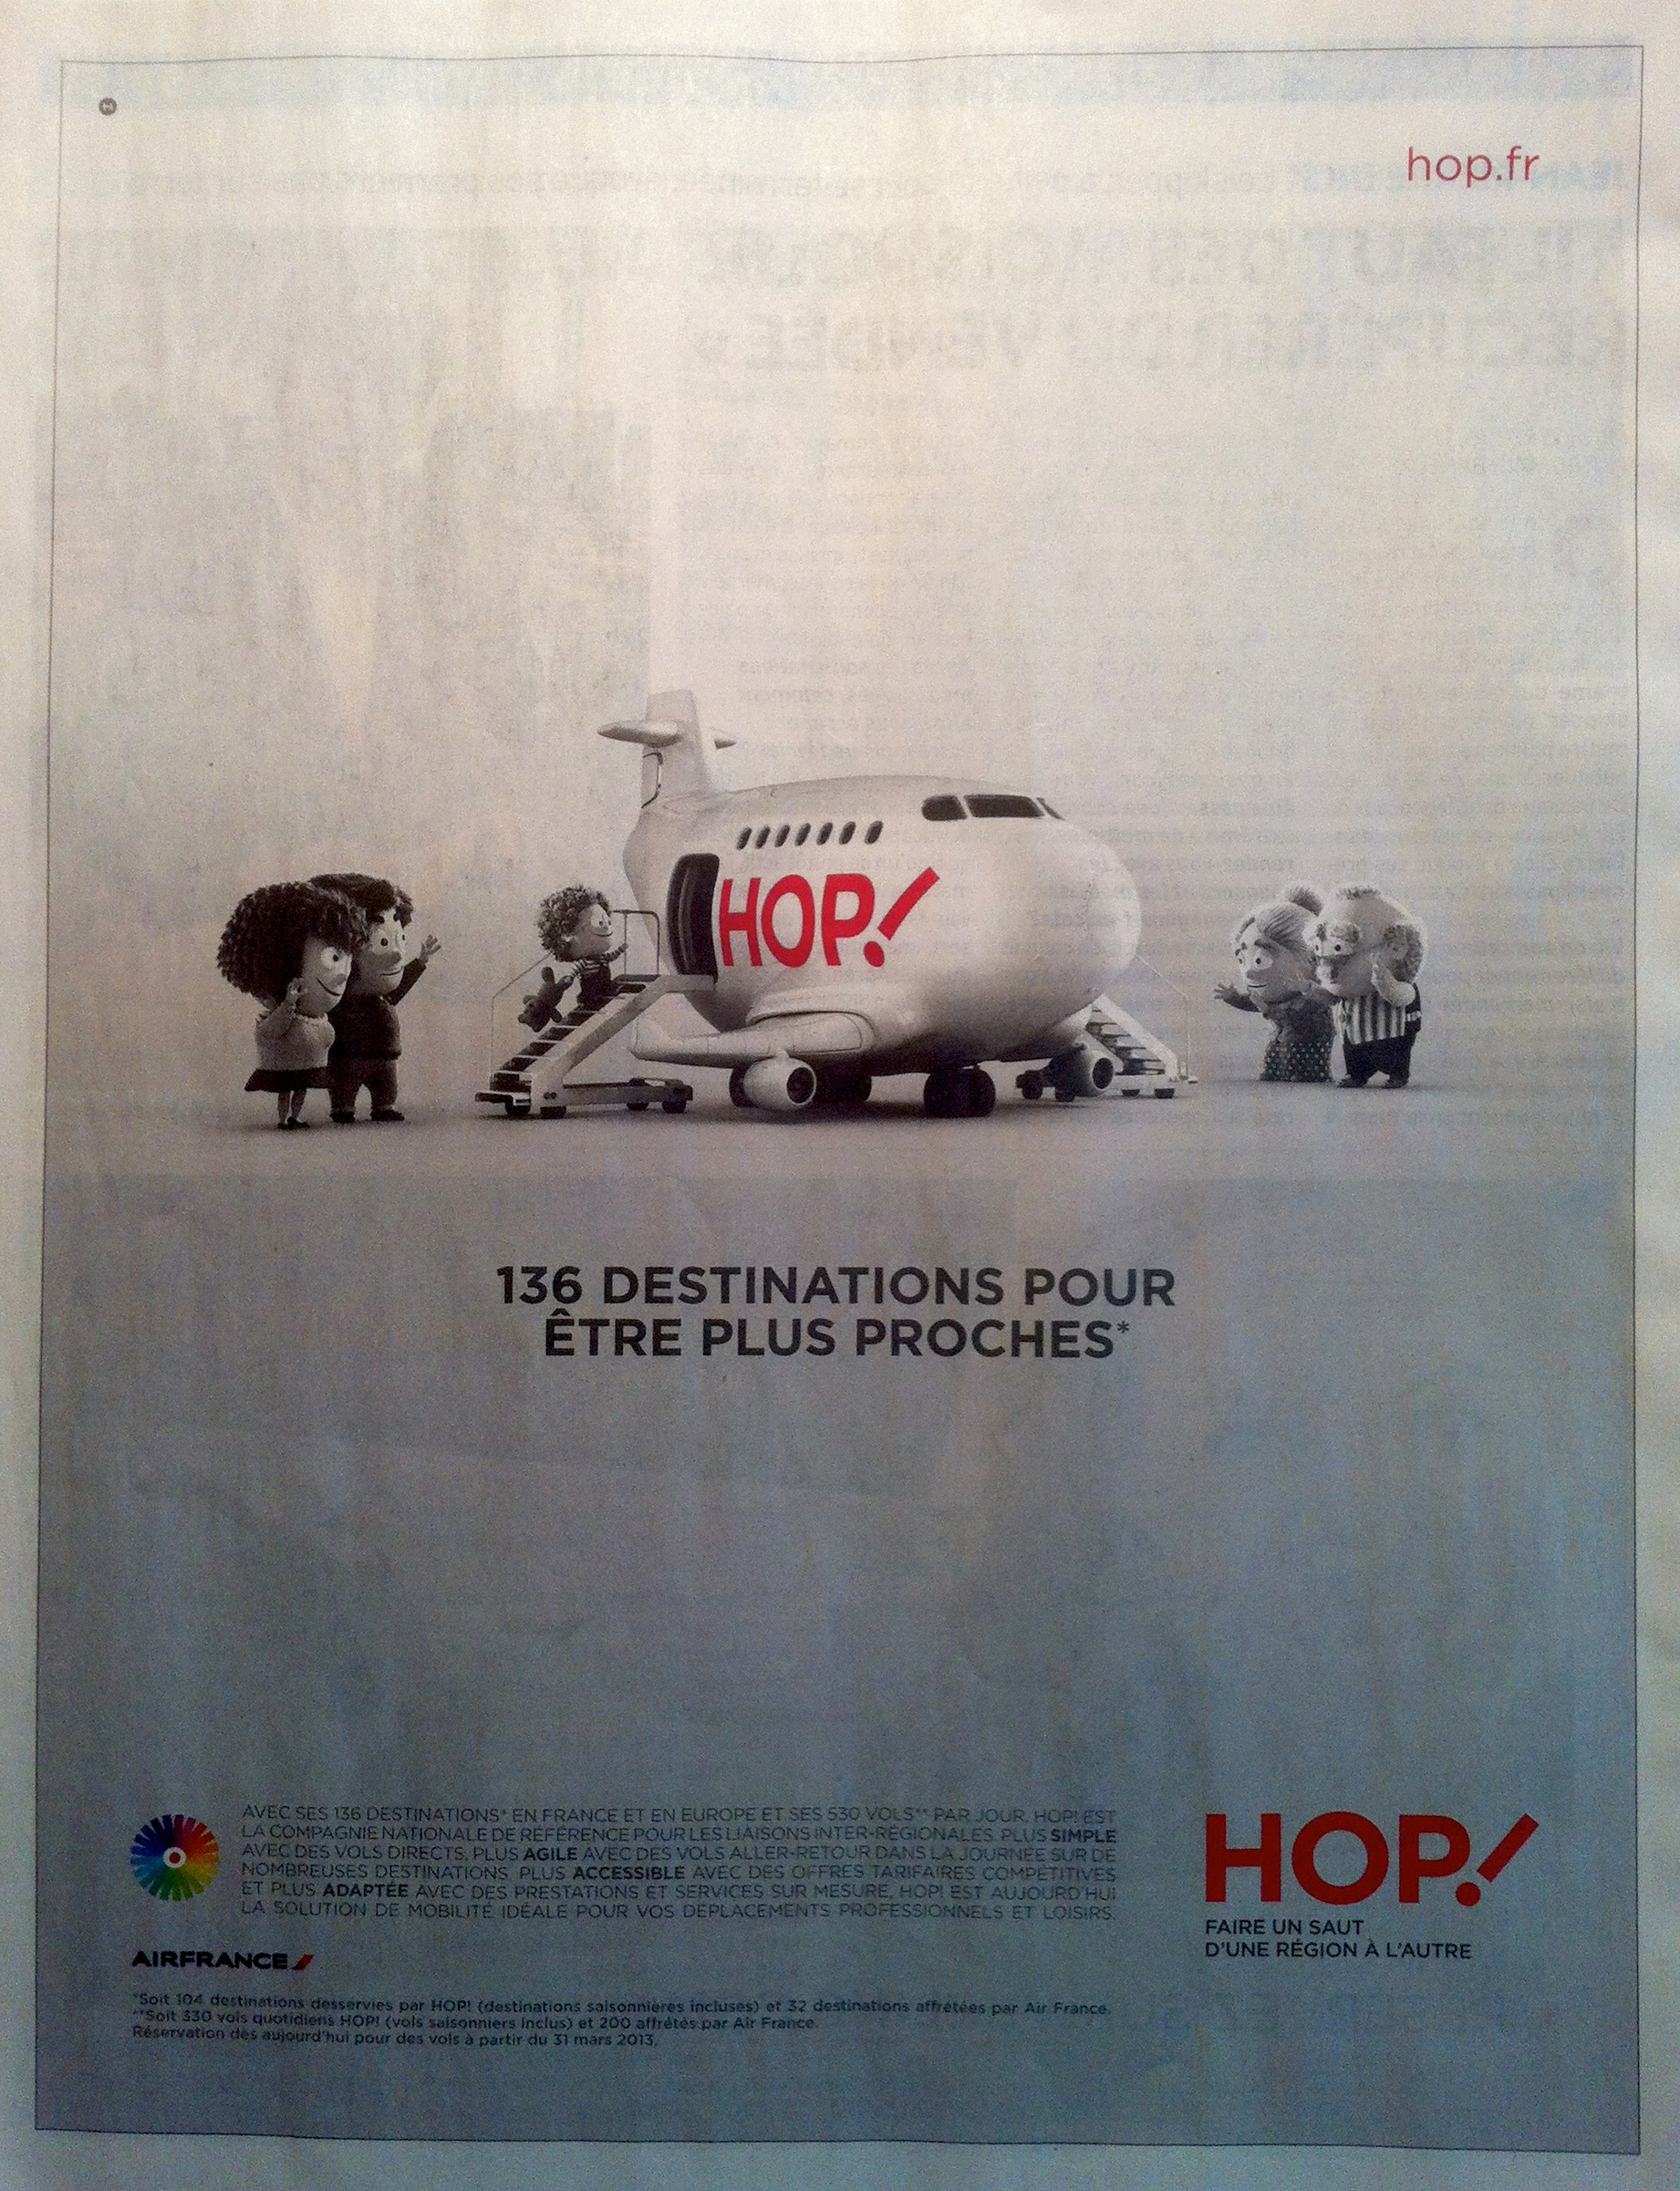 Air France HOP publicite, The Myndset Digital Marketing et Strategie de marque